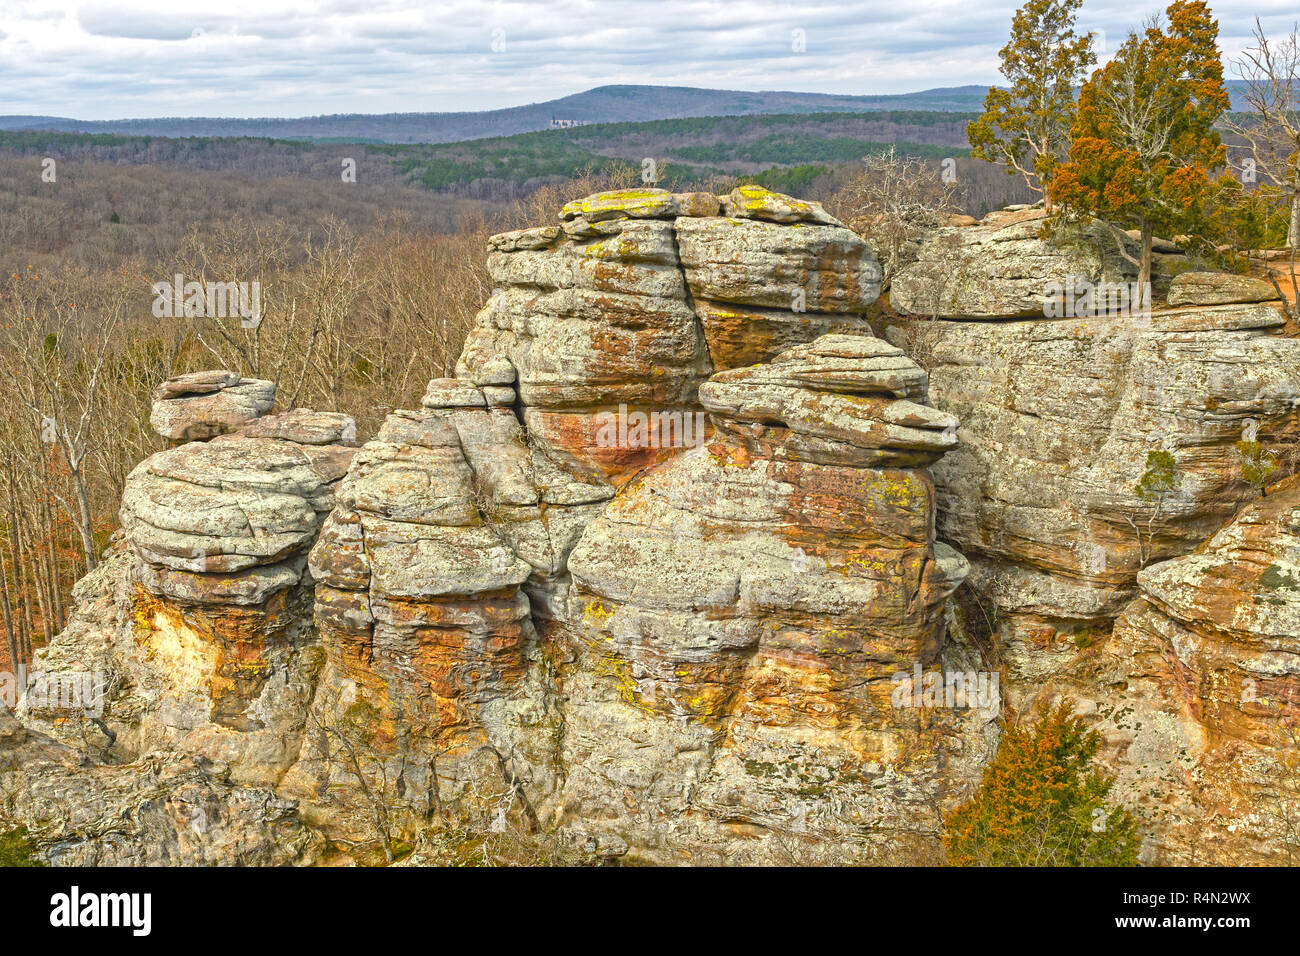 Colorful Rocks in the Wilderness - Stock Image